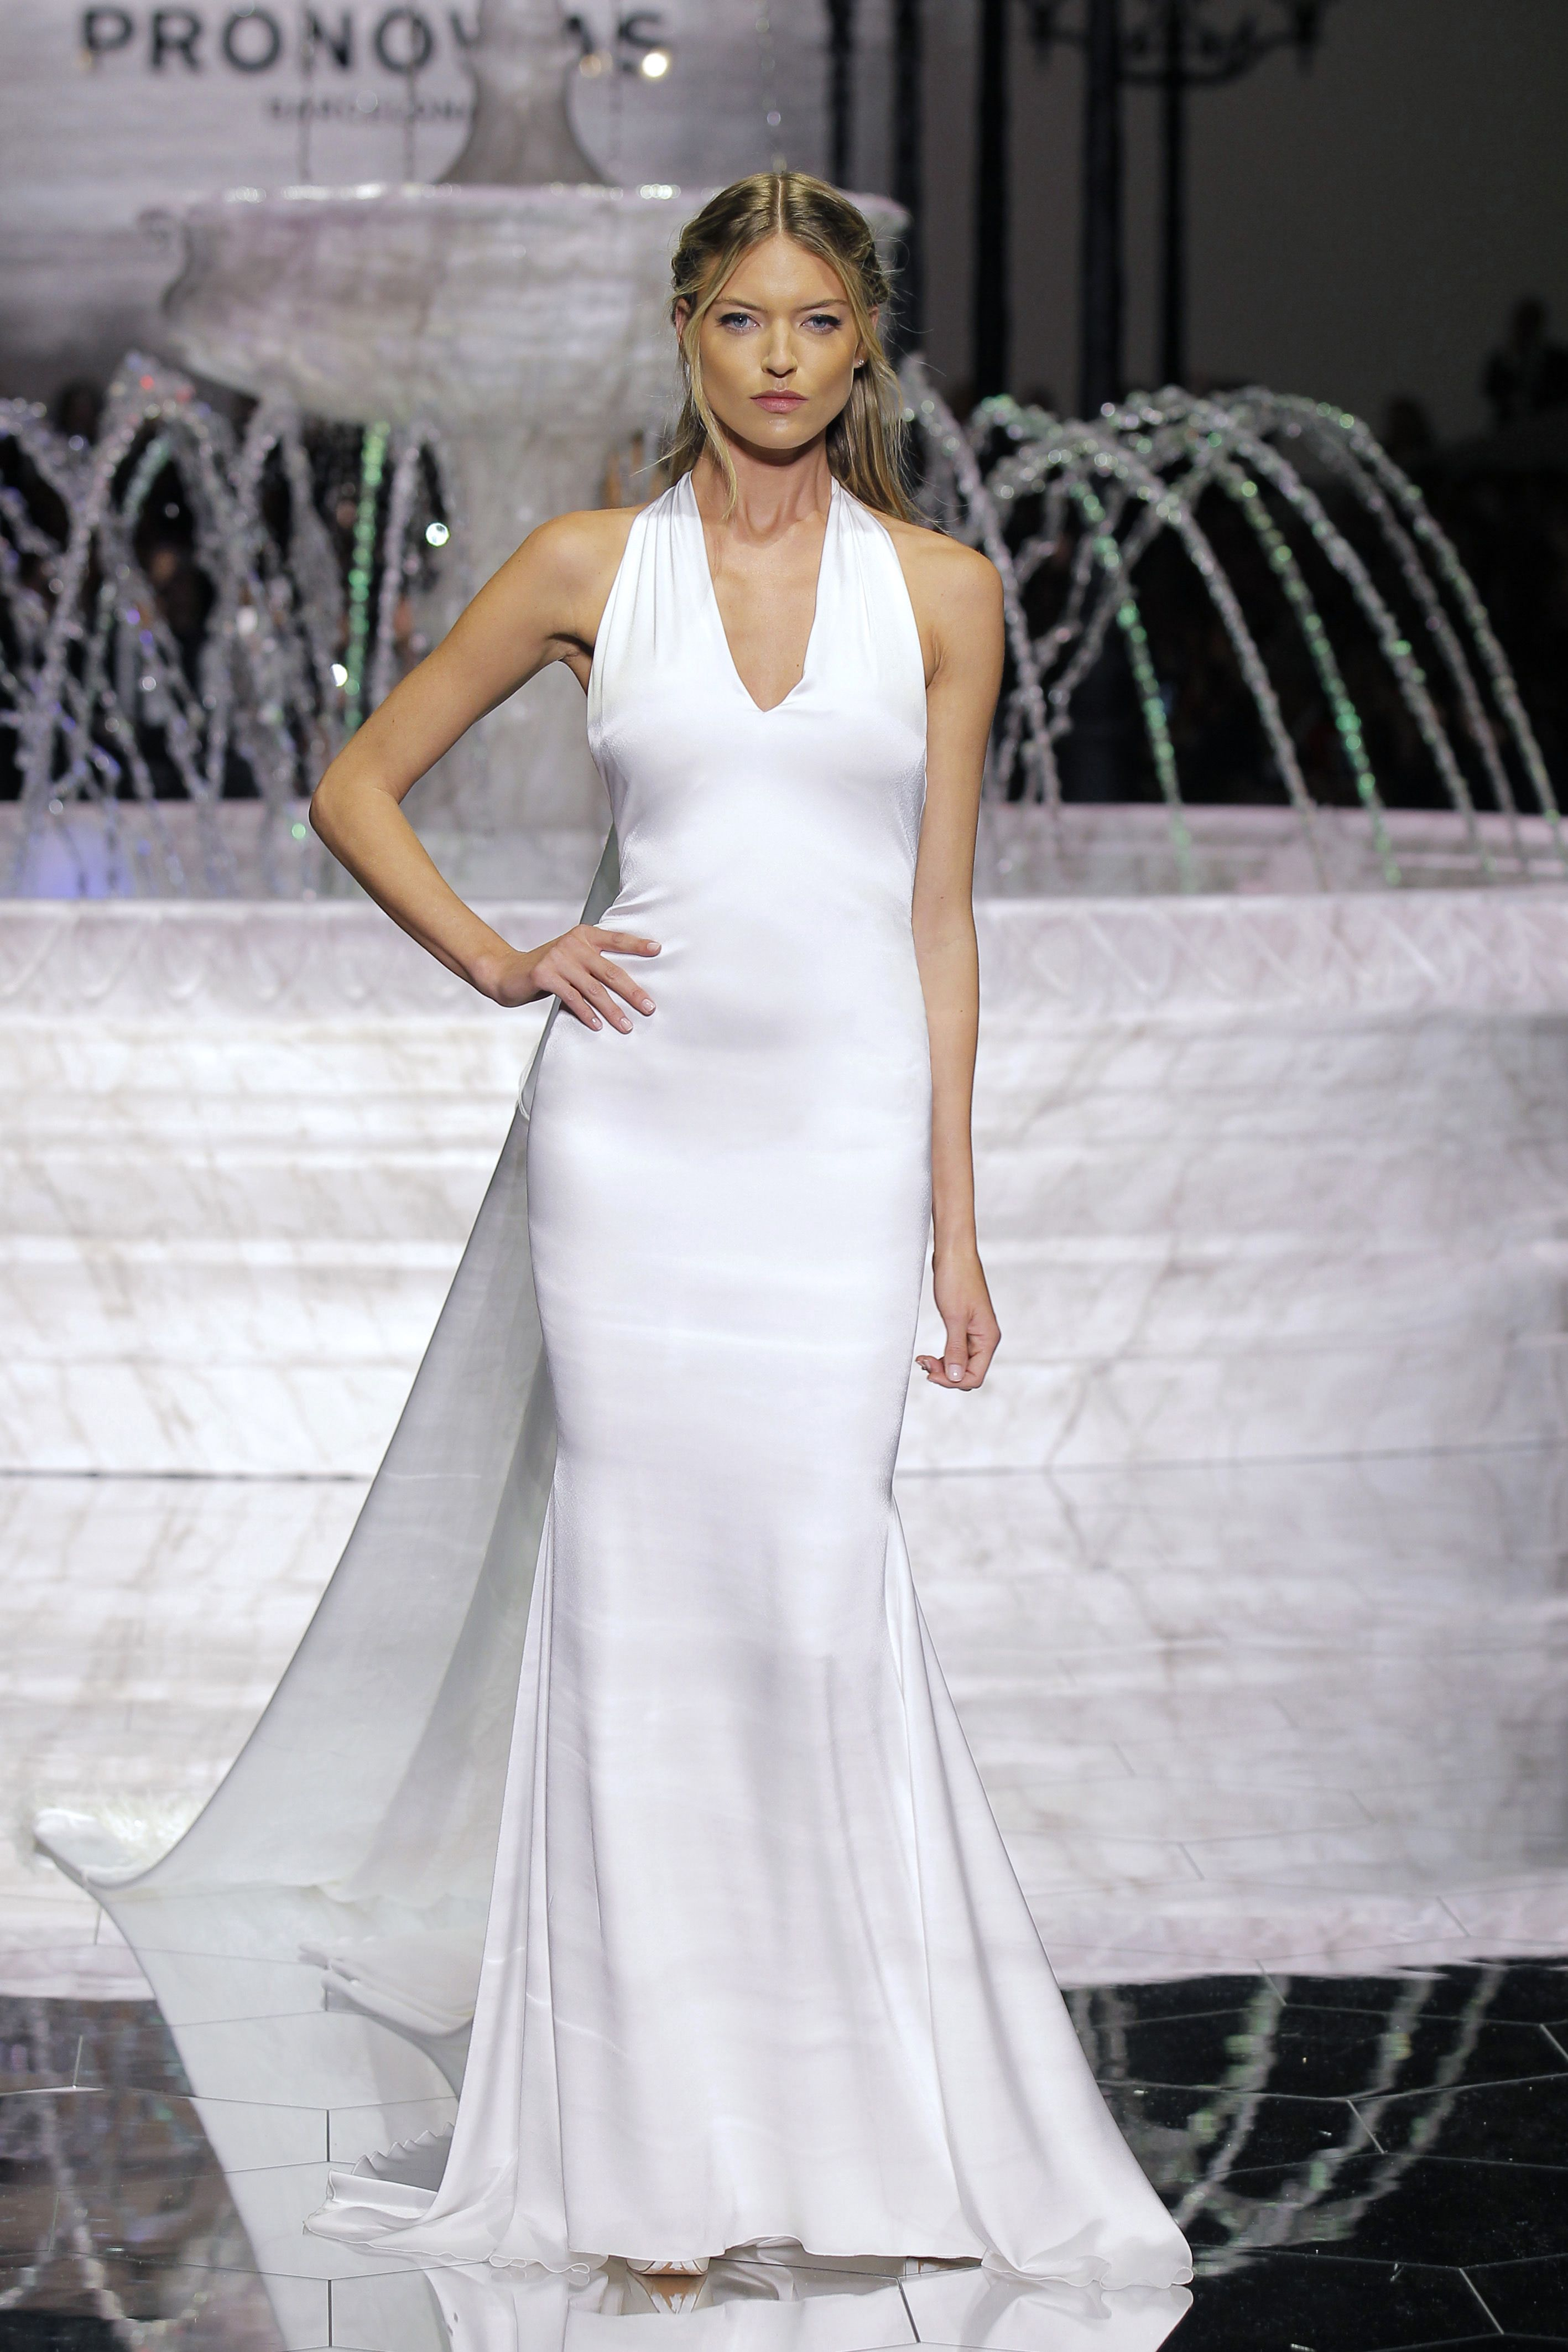 Trendy Pronovias Wedding Dress Find Pronovias and More at Here Comes the Bride in San Diego